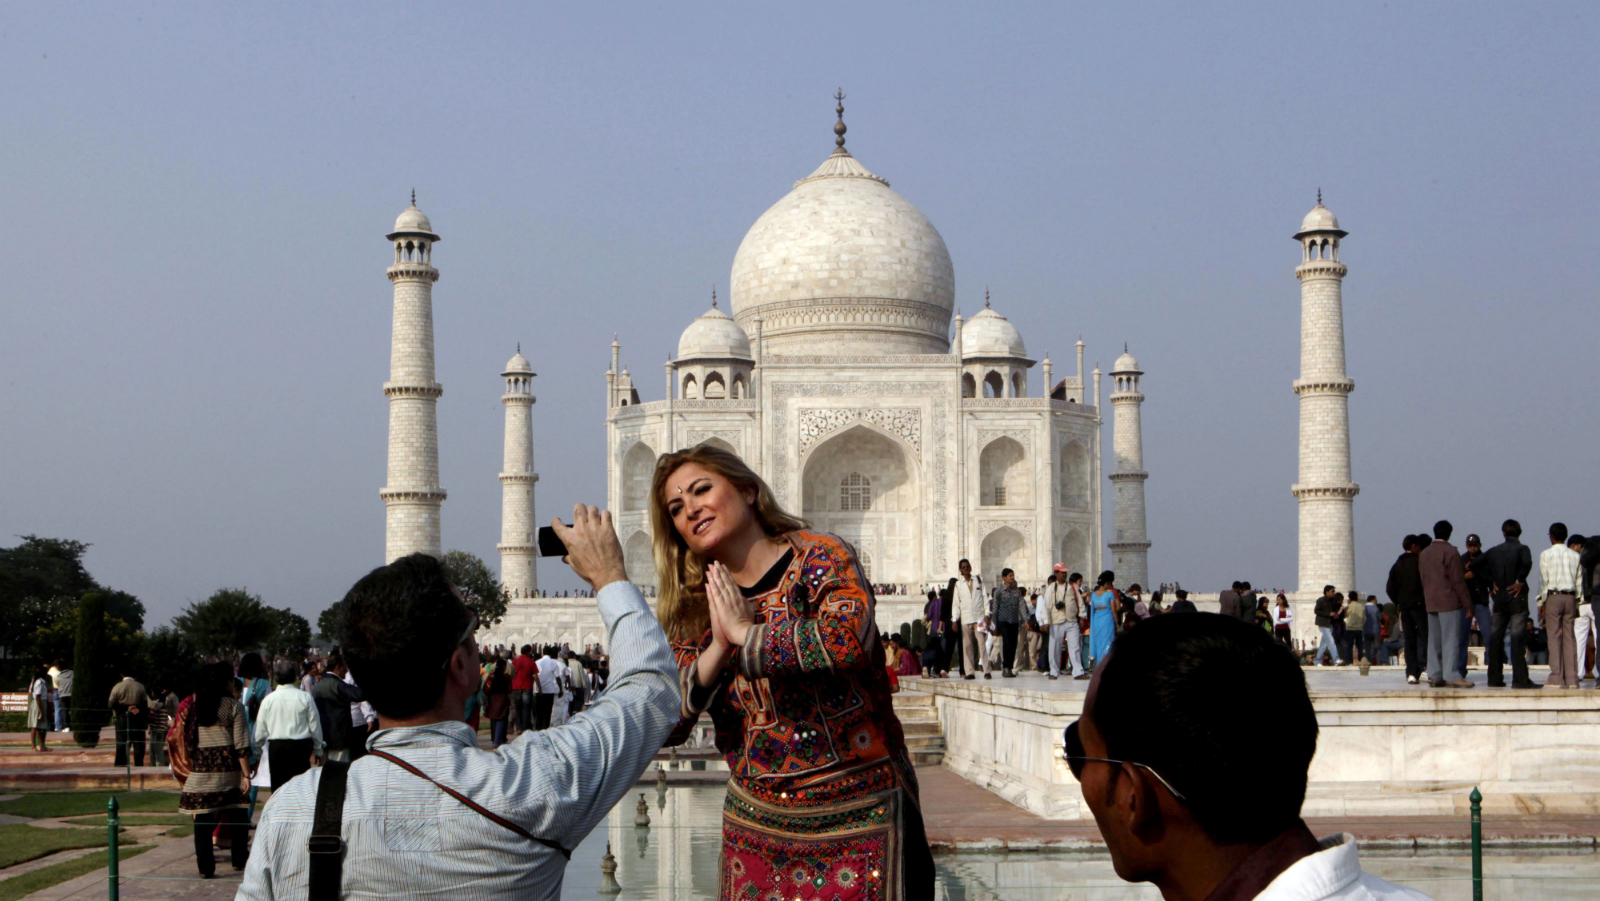 A foreign tourist greets in Indian way as others take her photographs at the Taj Mahal monument, seen behind, in Agra, India, Saturday, Dec. 4, 2010.